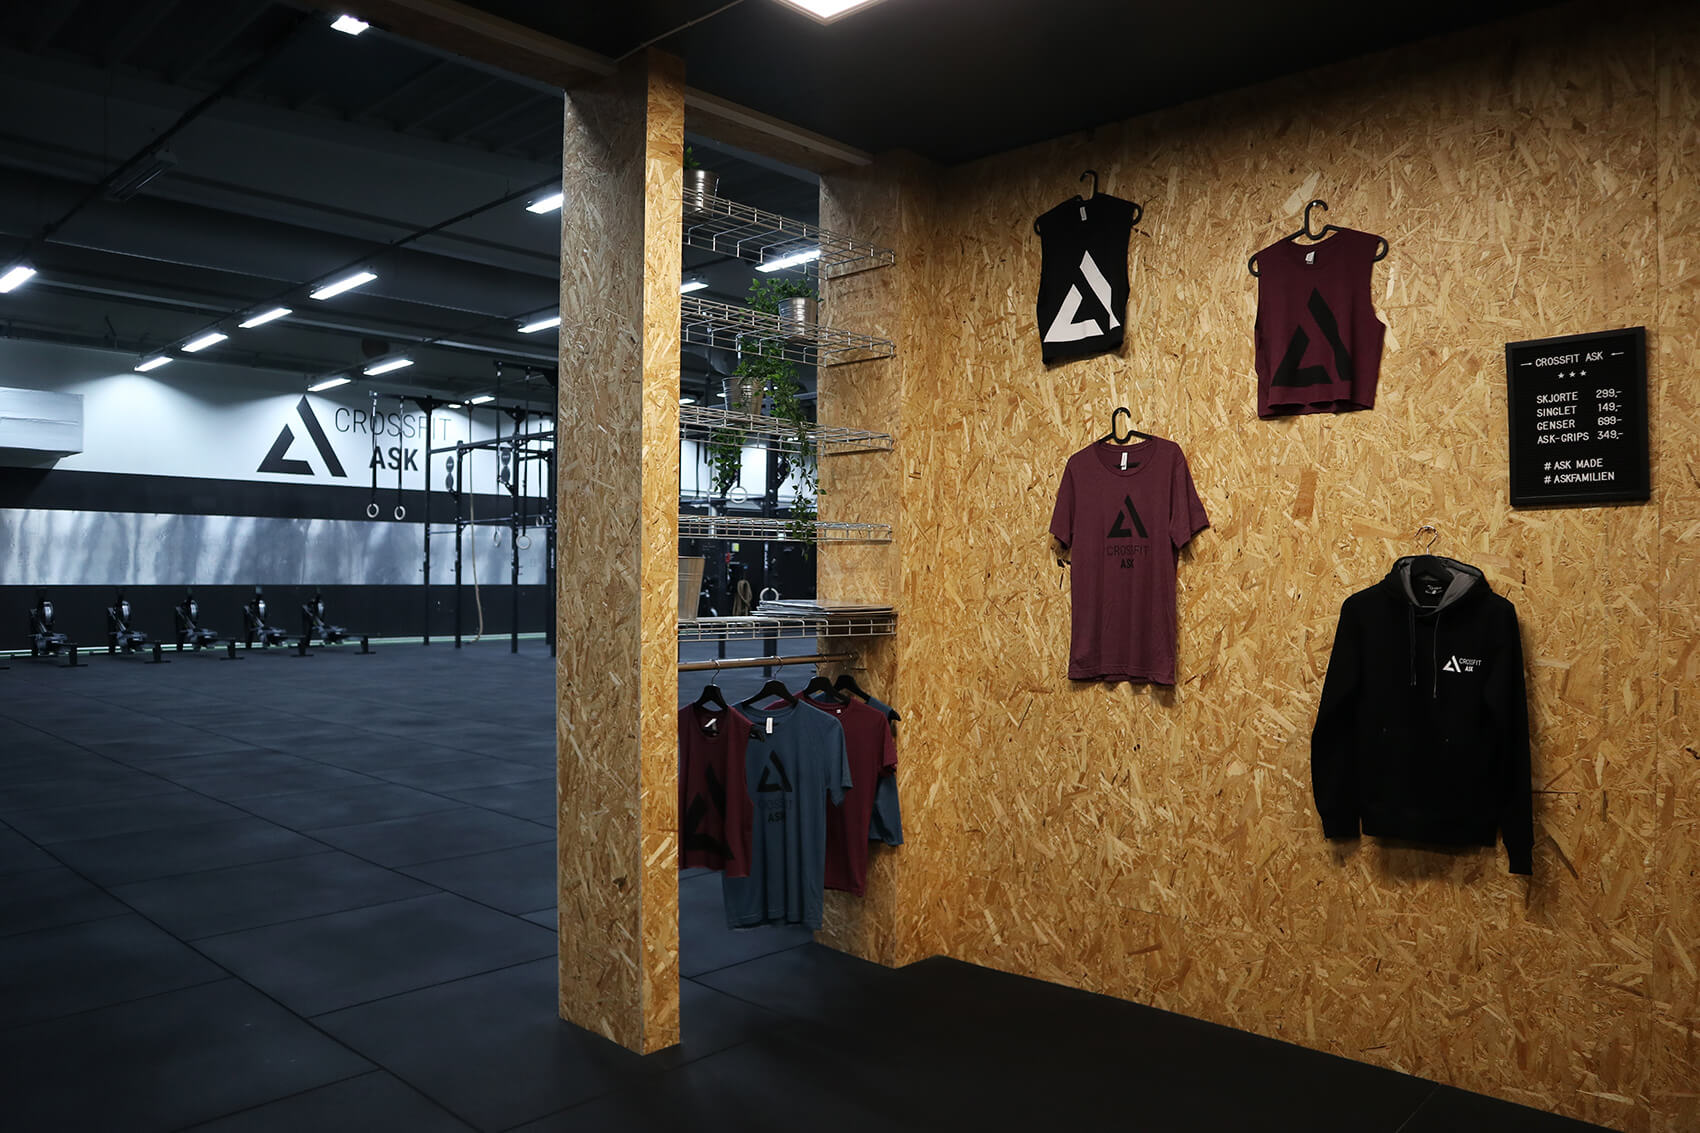 drop-in-crossfit-stavanger-crossfit-norway